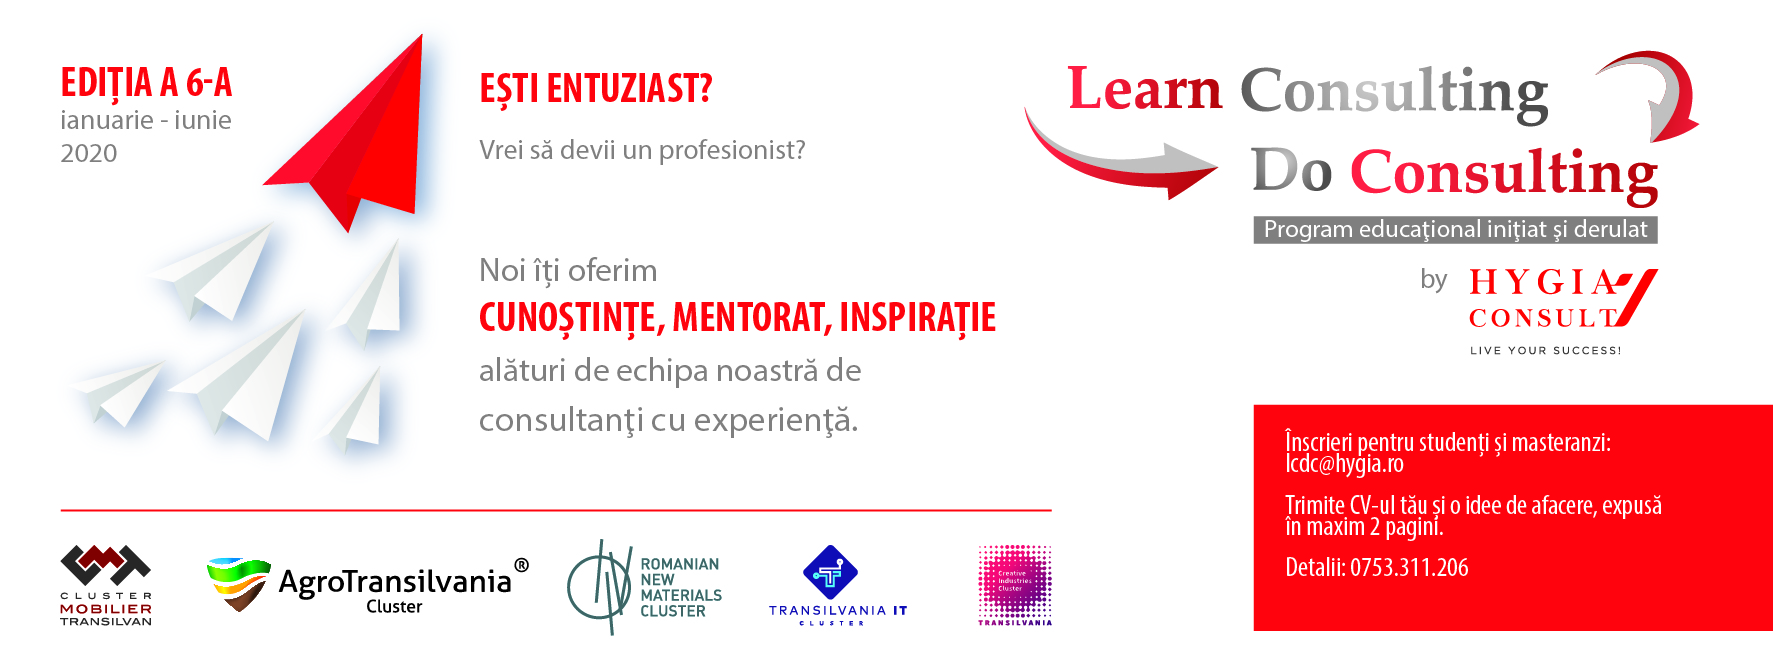 Learn Consulting, Do Consulting 2020 , editia a 6-a